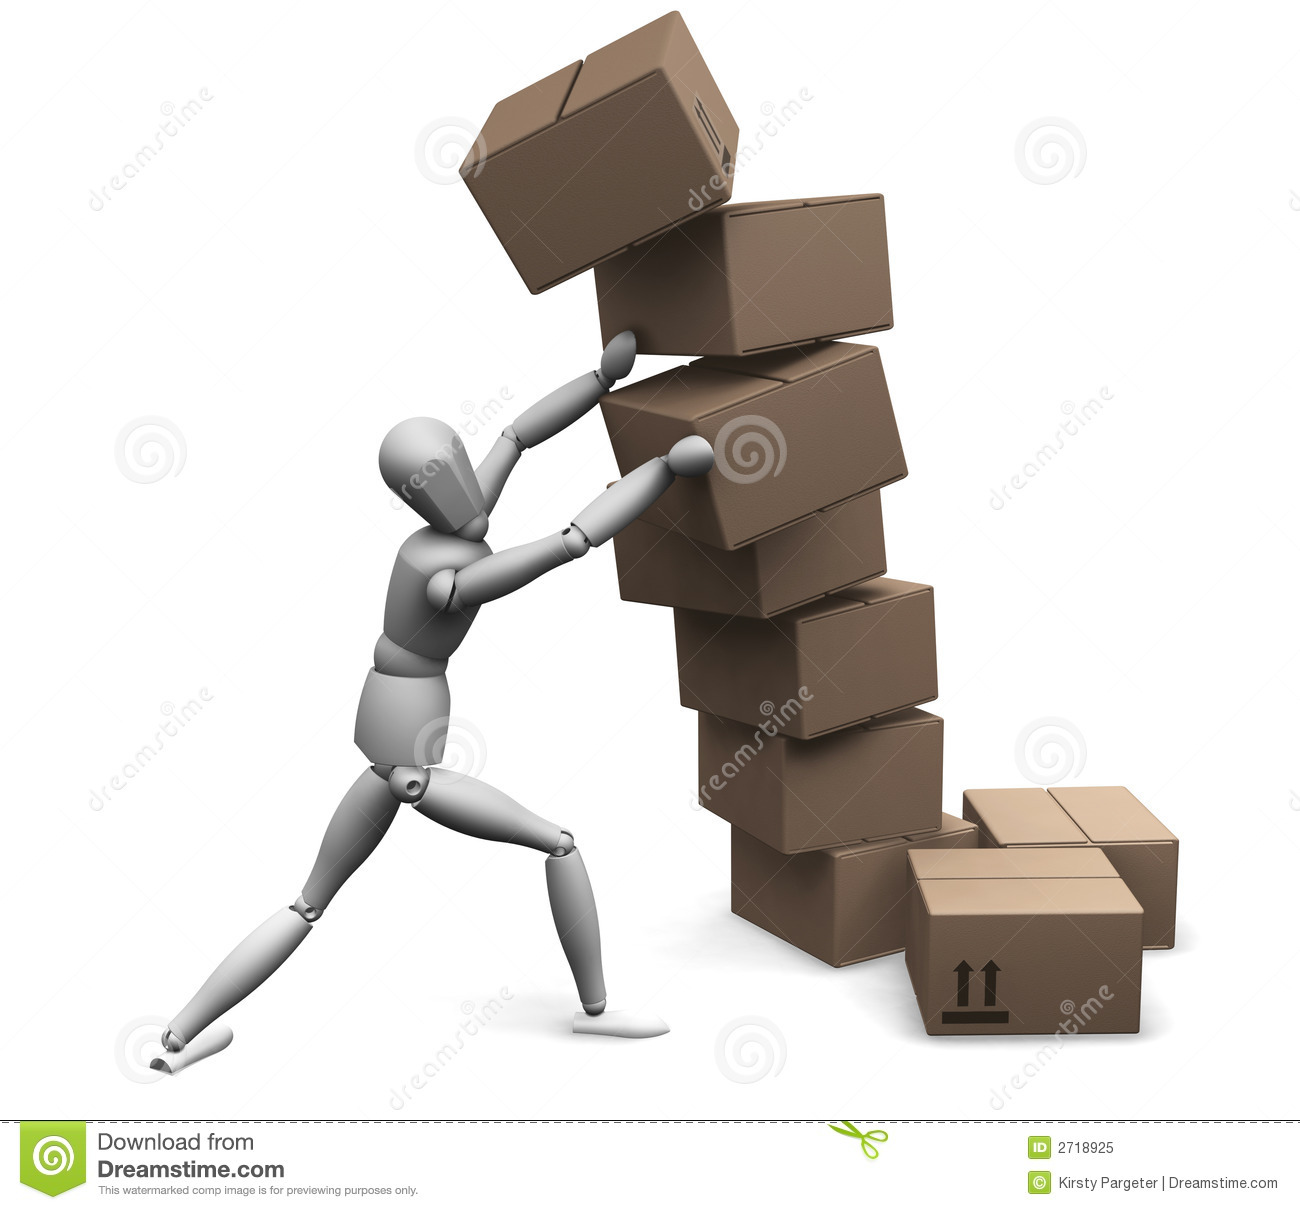 Falling Boxes Royalty Free Stock Photo - Image: 2718925